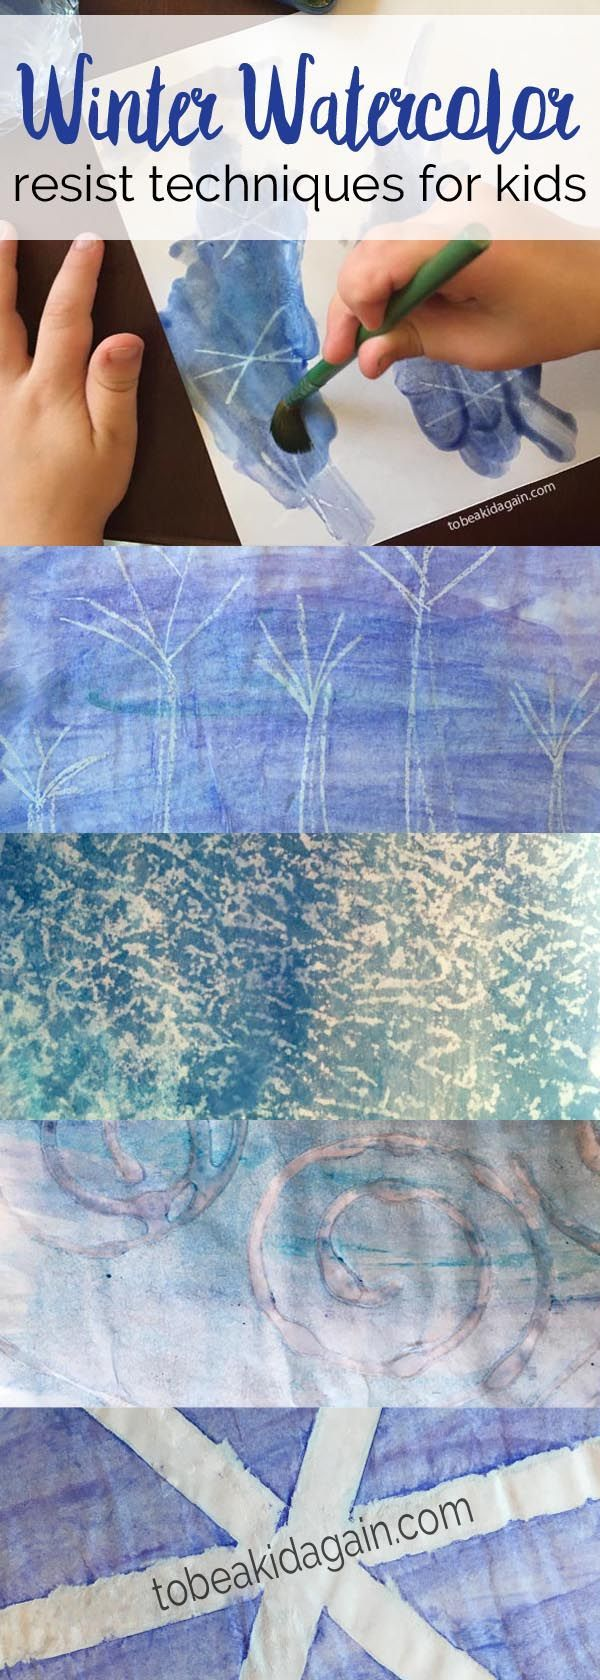 Simple water color resist techniques for kids. Use crayon, wax paper, glue, and tape to create beautiful winter crafts with kids!